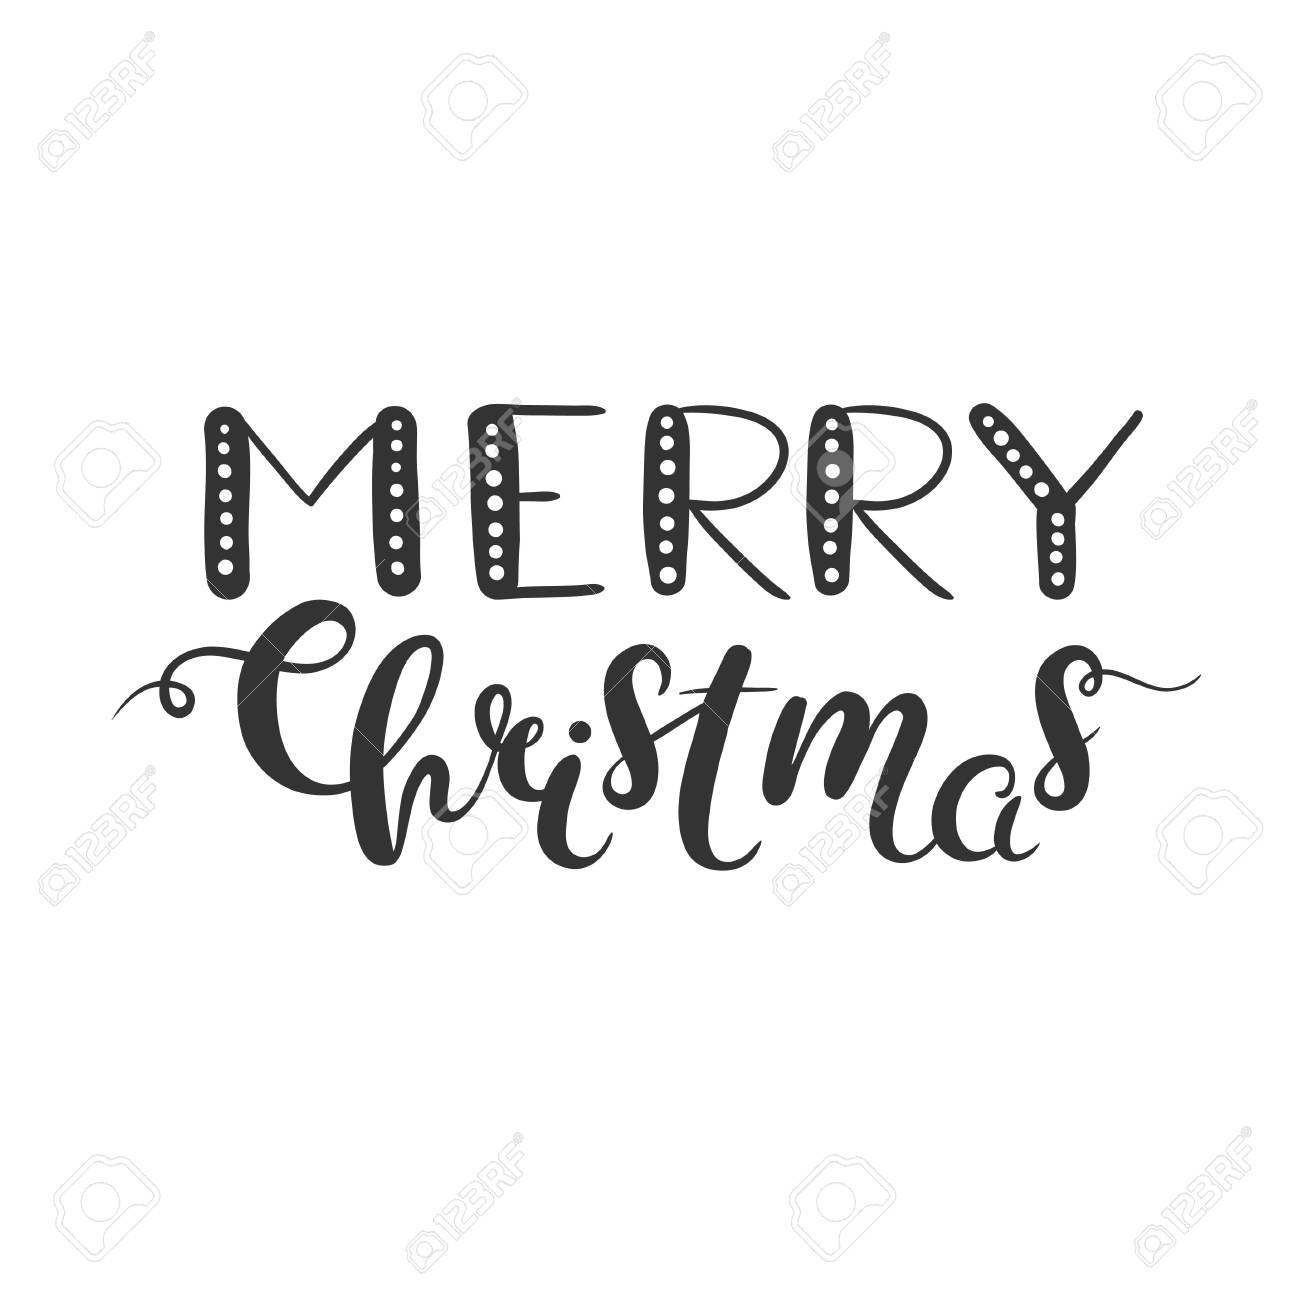 Merry Christmas Lettering Isolated On White Christmas Clipart Royalty Free Cliparts Vectors And Stock Illustration Image 69046075